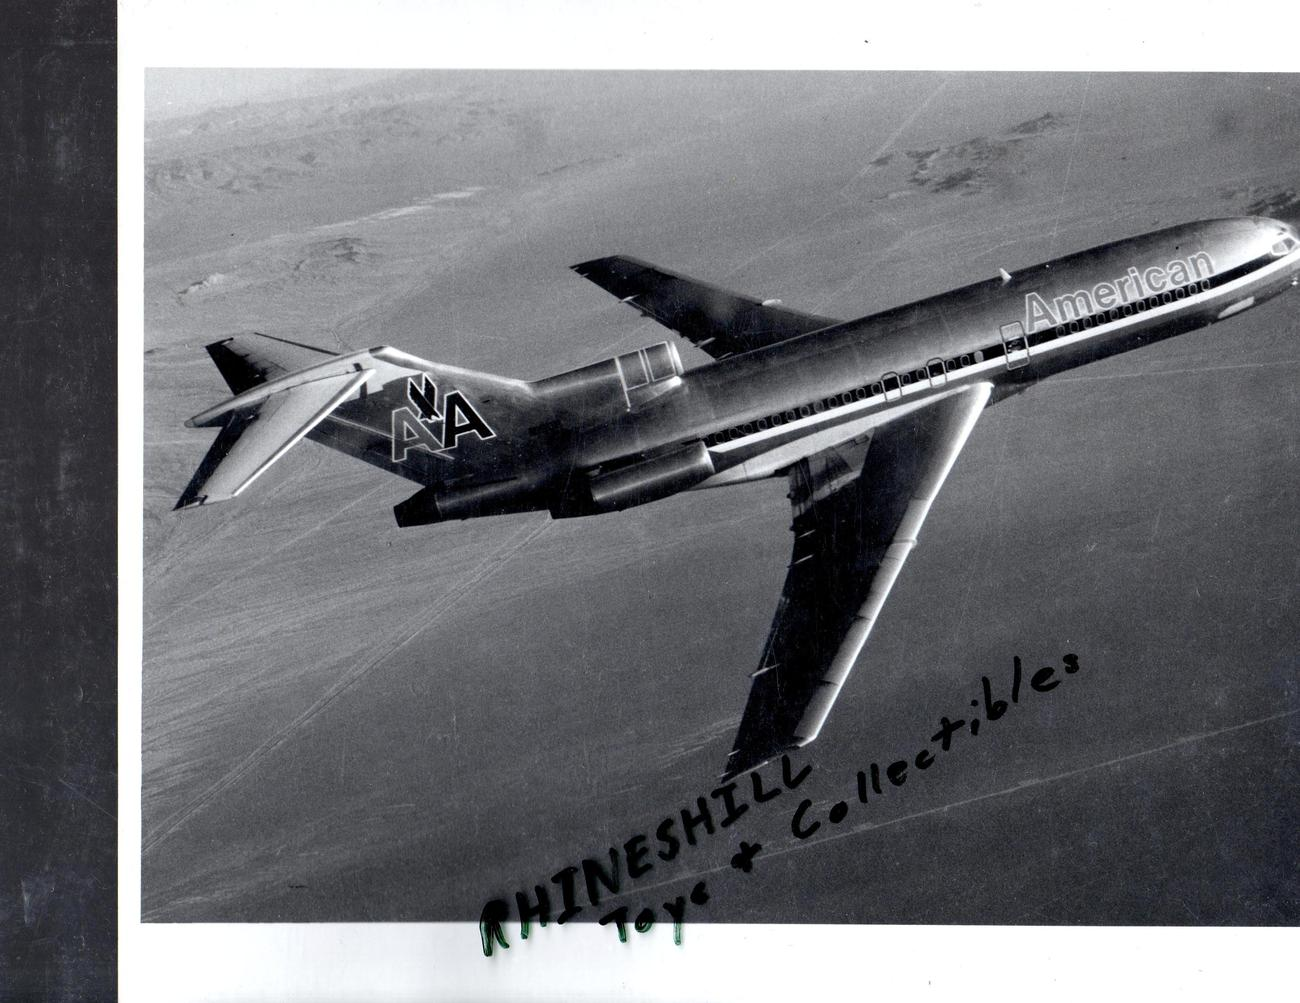 Primary image for American Airlines  727 In Flight photograph